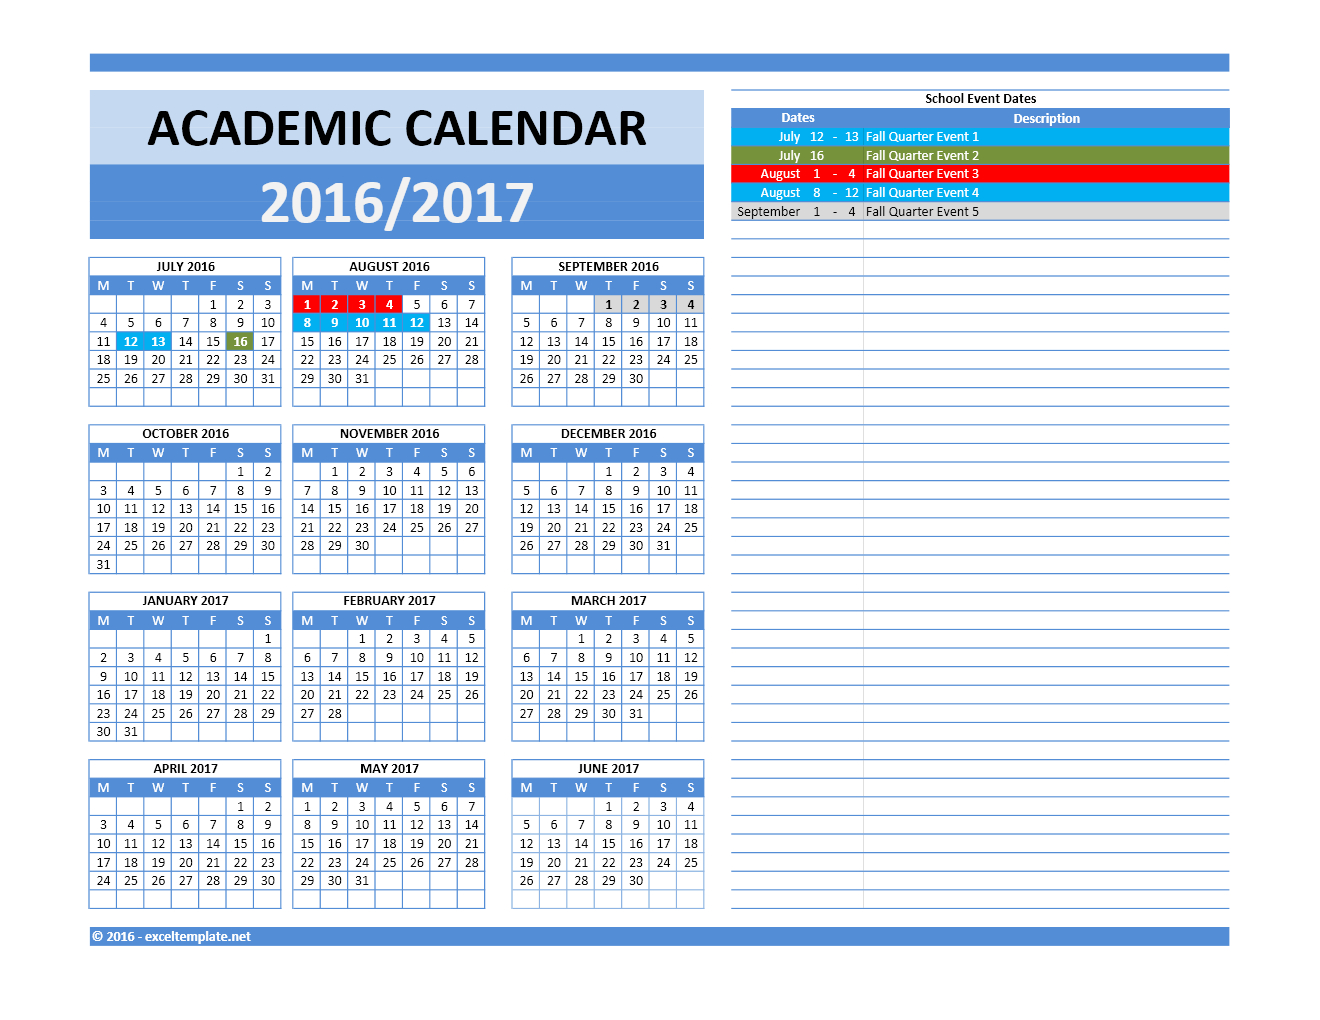 20172018 And 20162017 School Calendar Templates | Excel within Yearly Event Calendar Template Excel